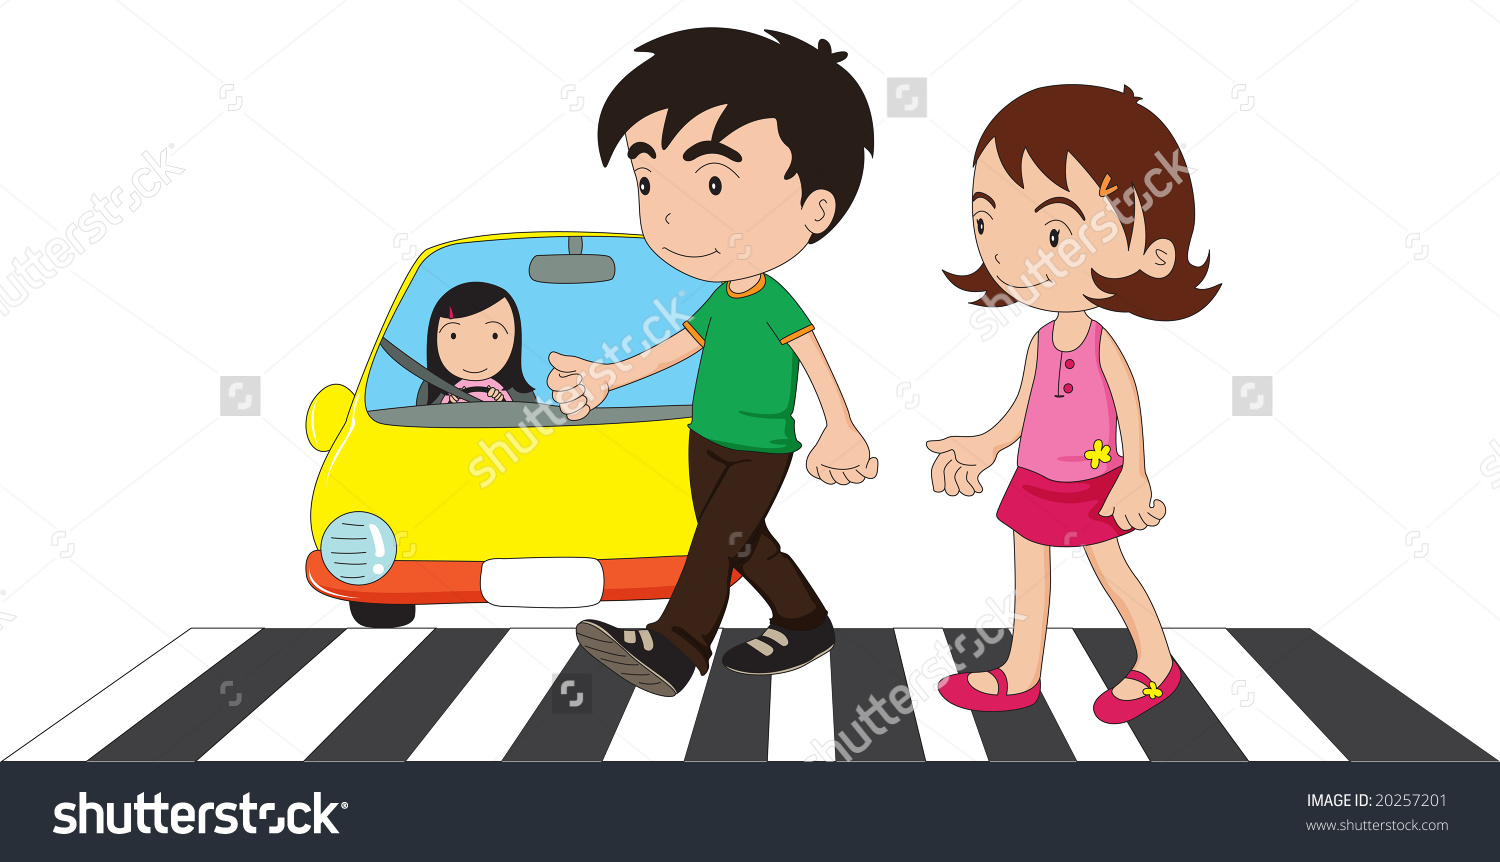 Zebra clipart road Clipart crossing Illustration Road collection